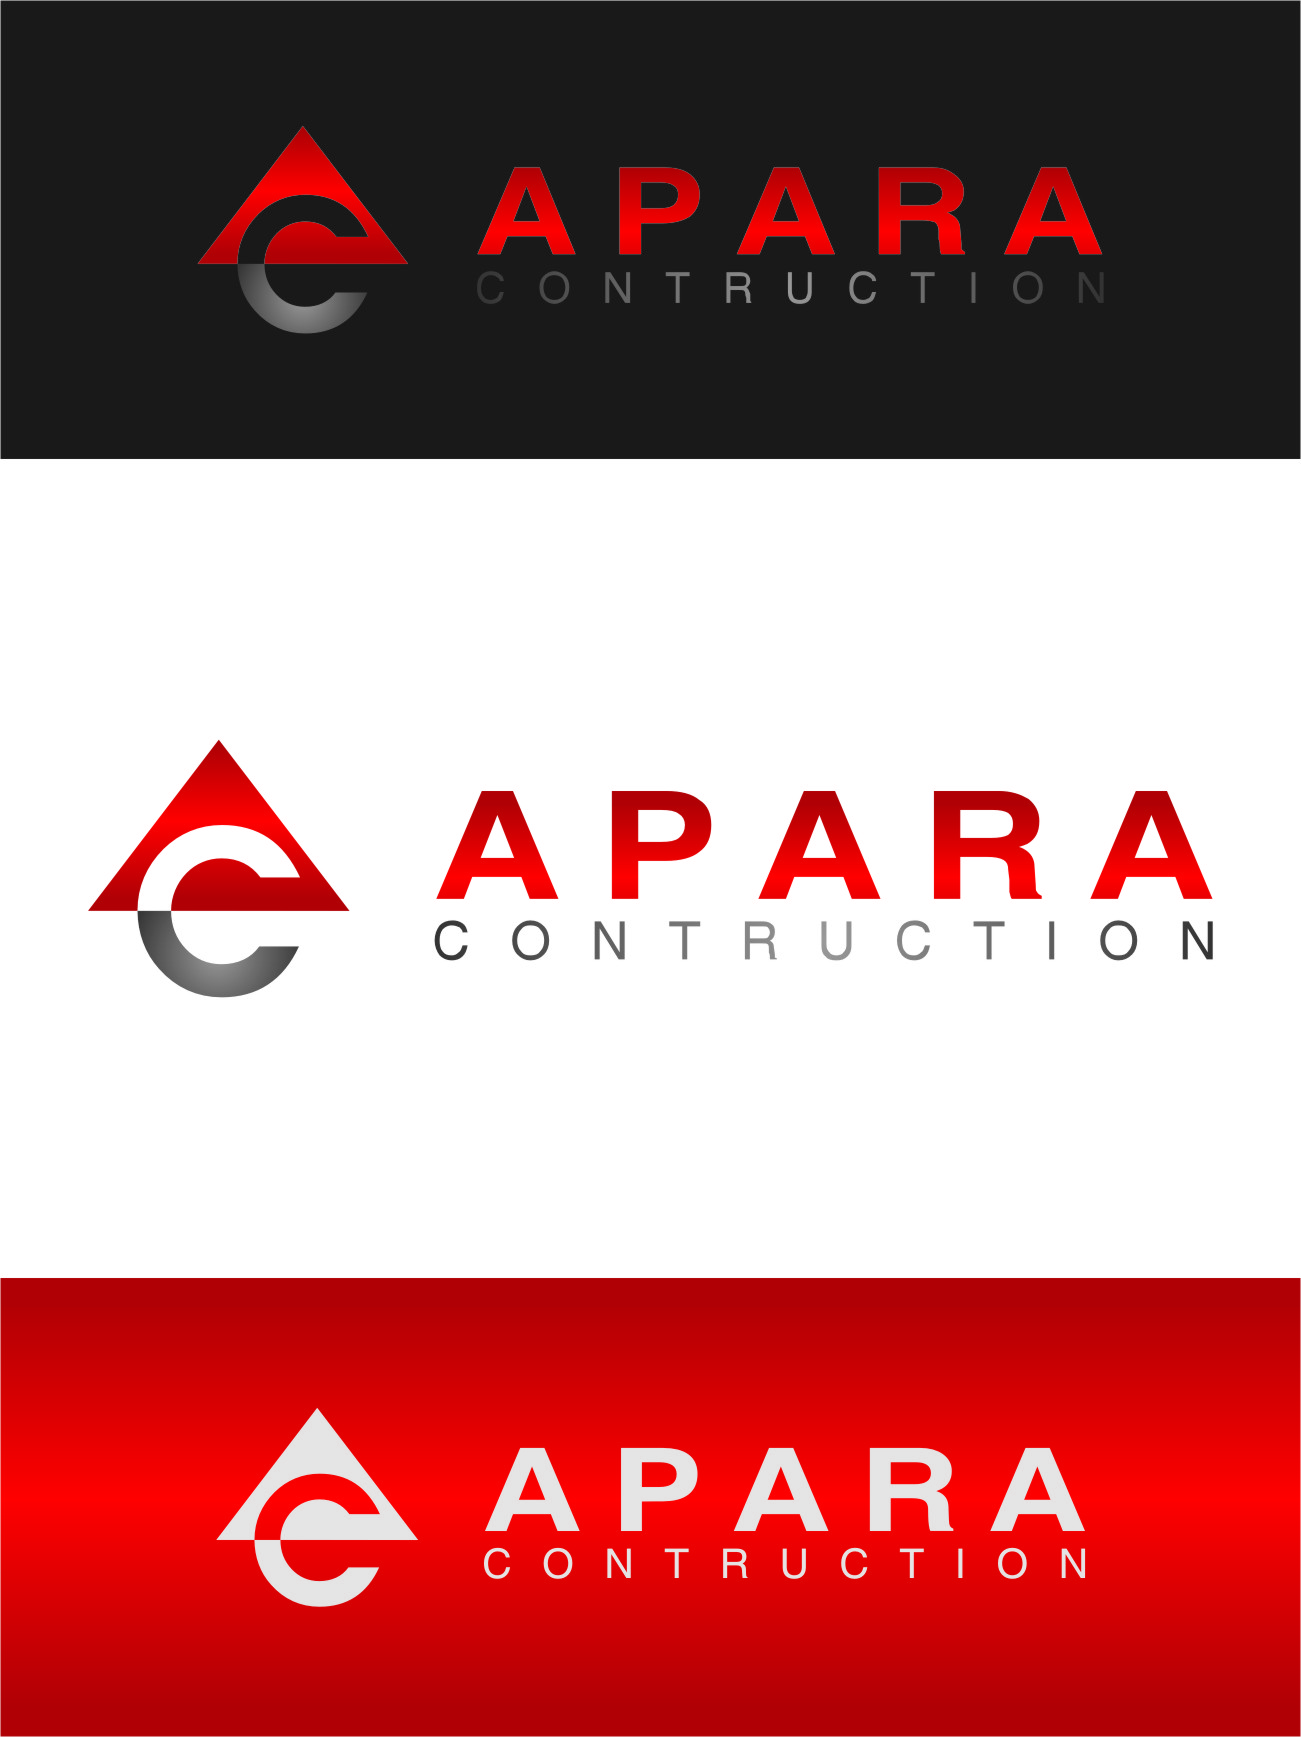 Logo Design by RasYa Muhammad Athaya - Entry No. 22 in the Logo Design Contest Apara Construction Logo Design.